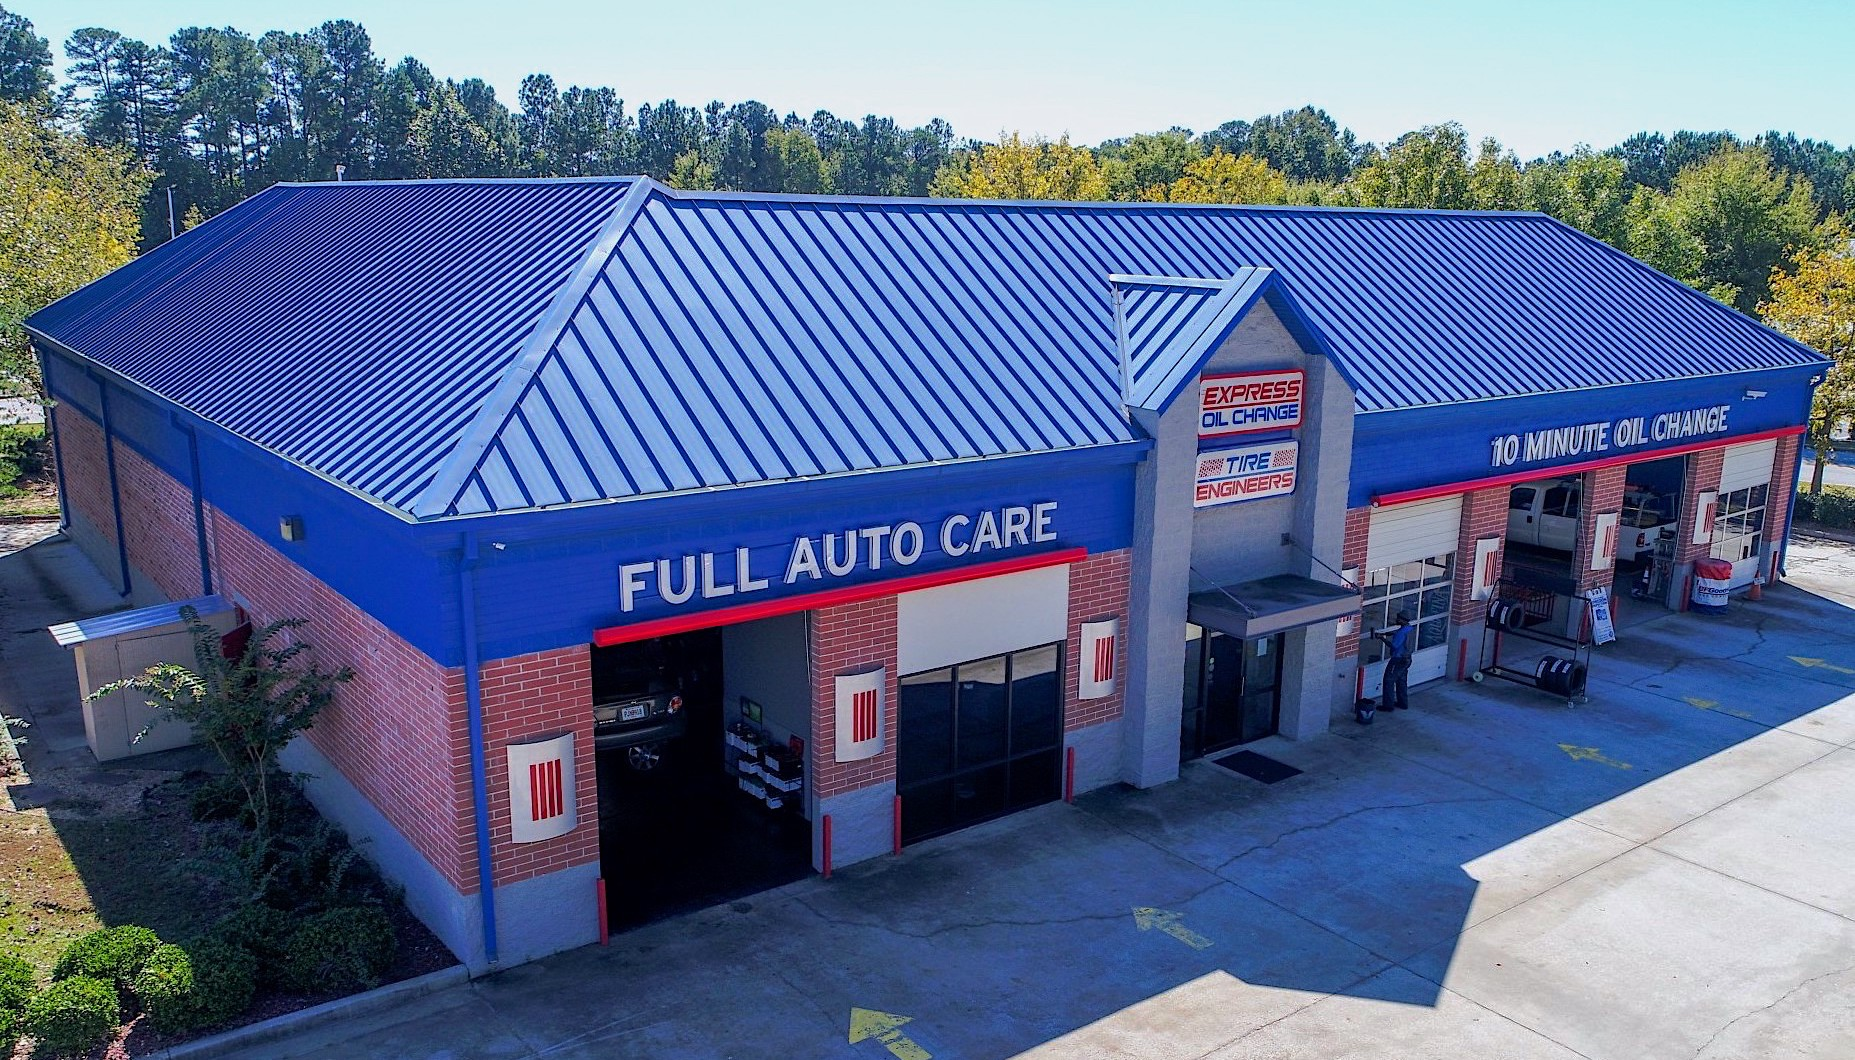 Express Oil Change & Tire Engineers Newnan, GA store